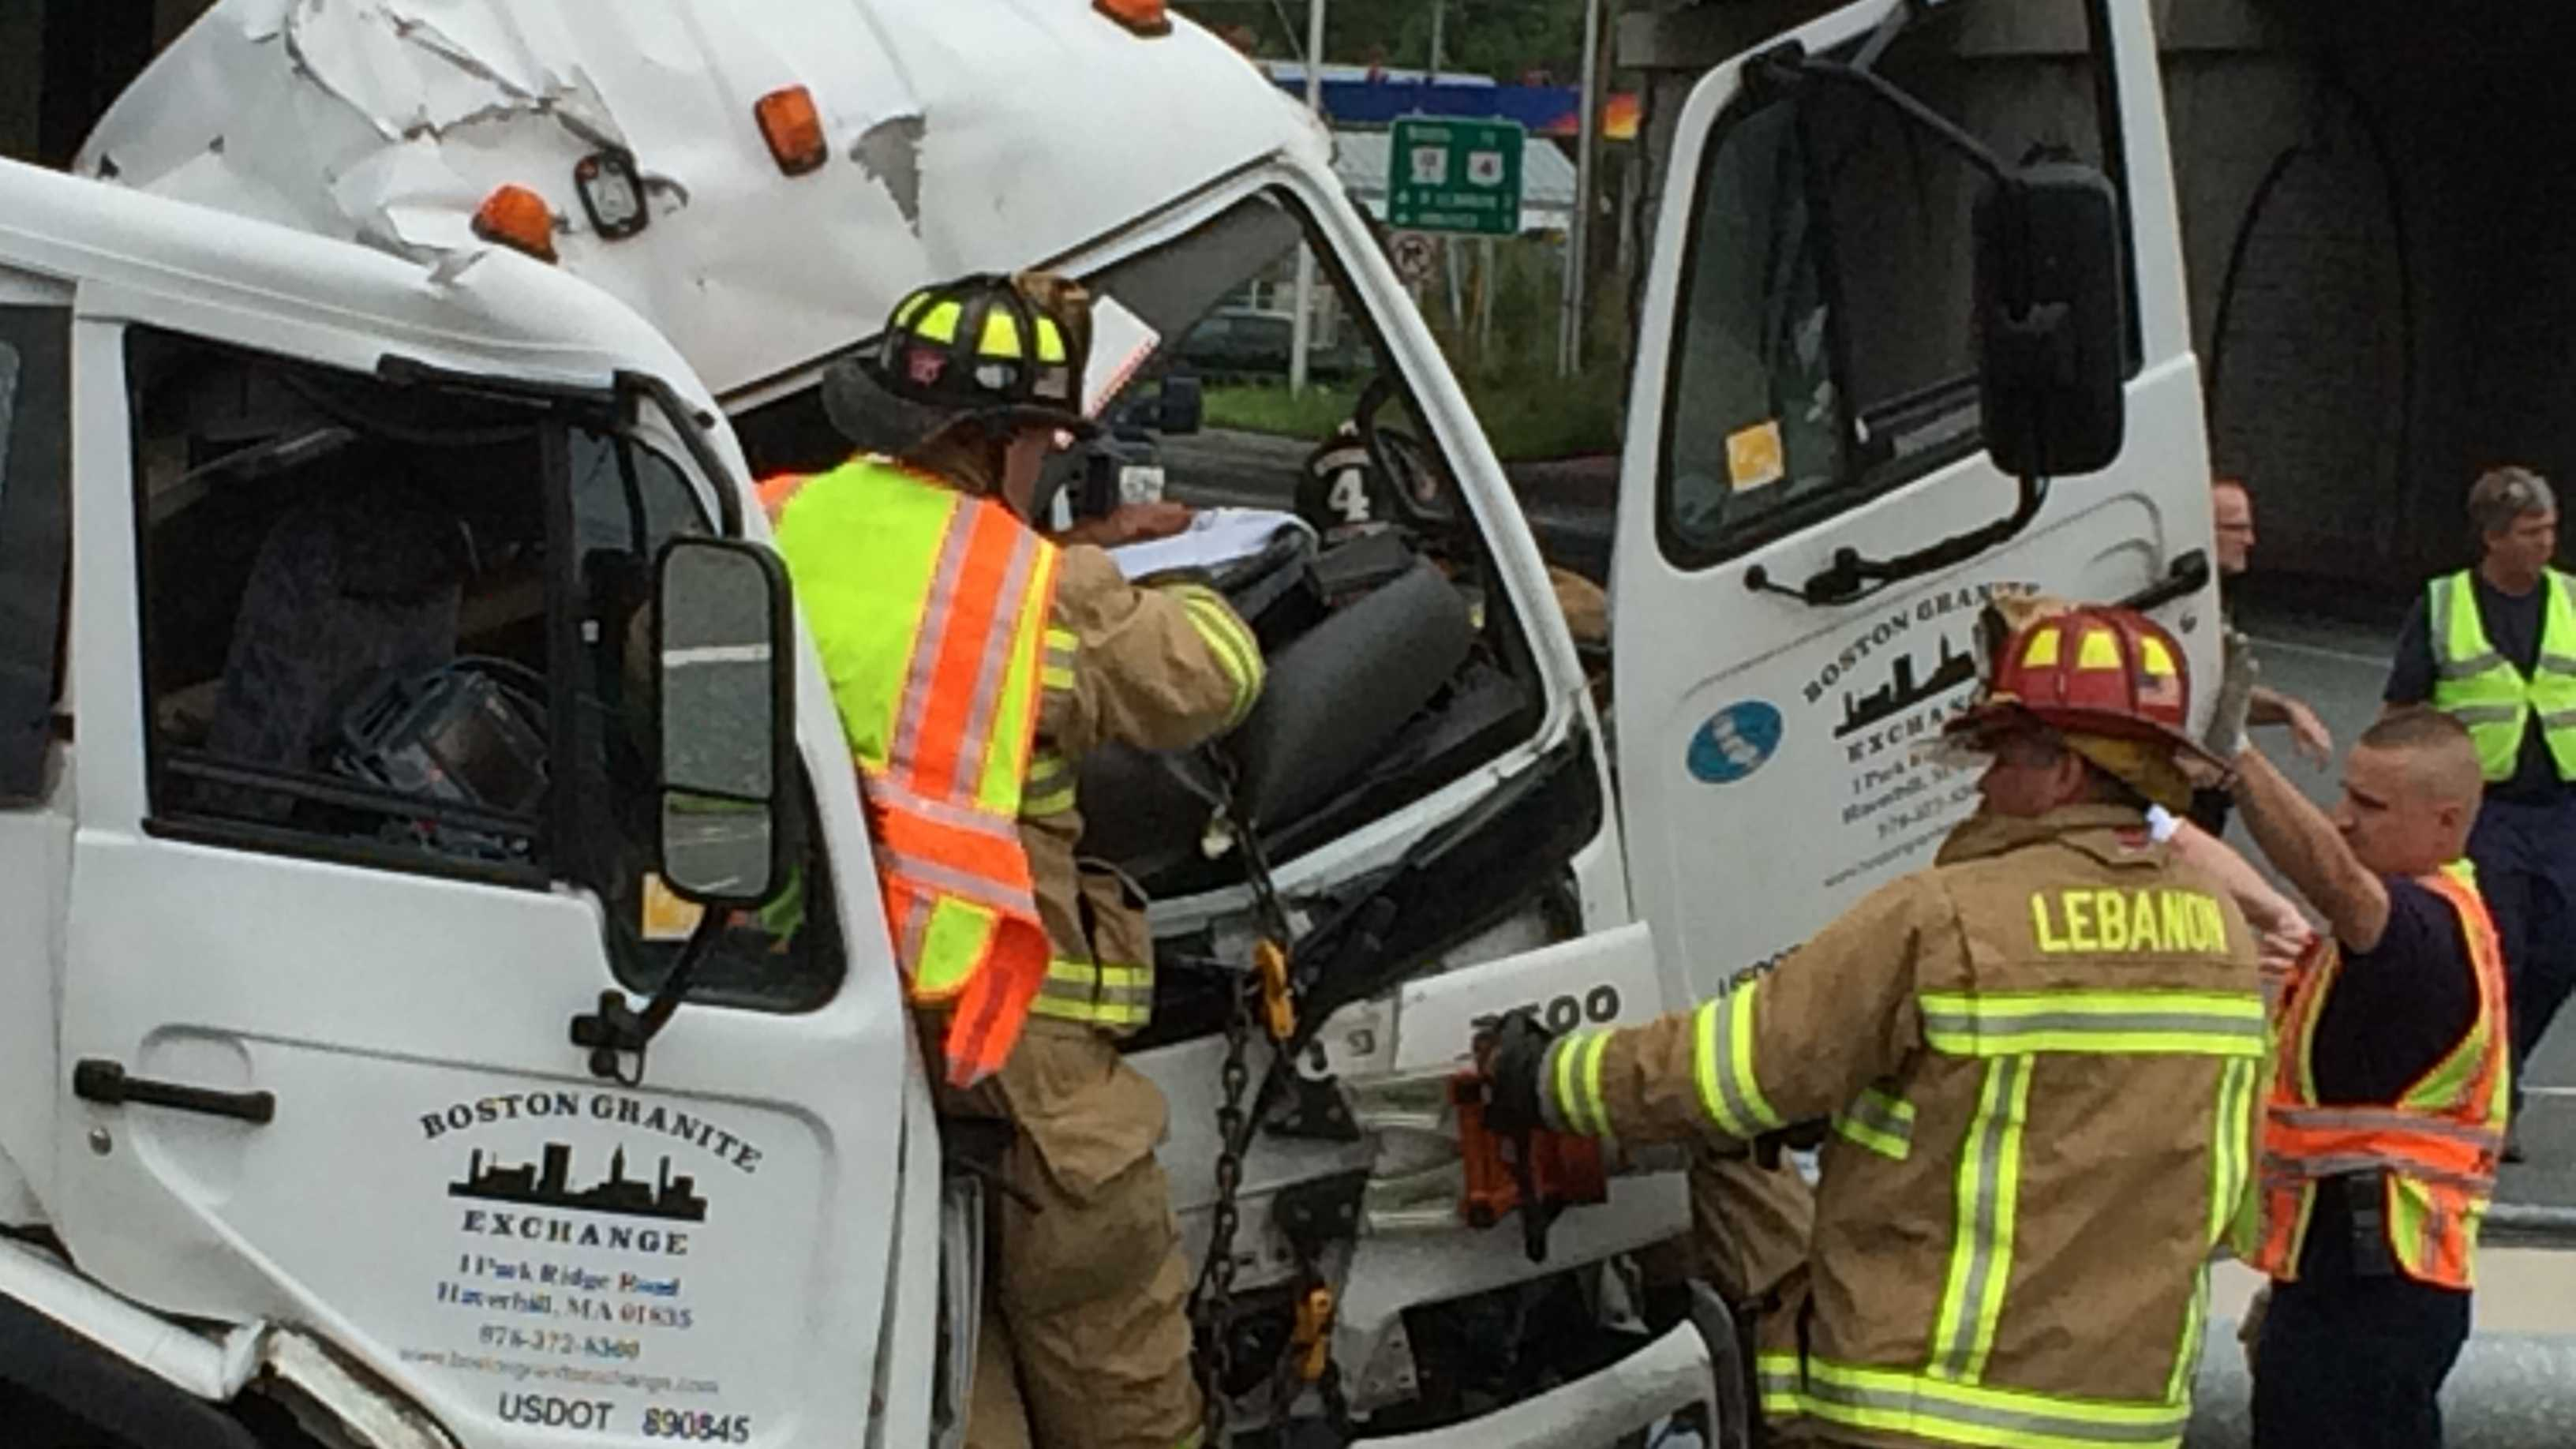 A flatbed delivery truck brought down a traffic signal pole Thursday morning in a crash in West Lebanon.